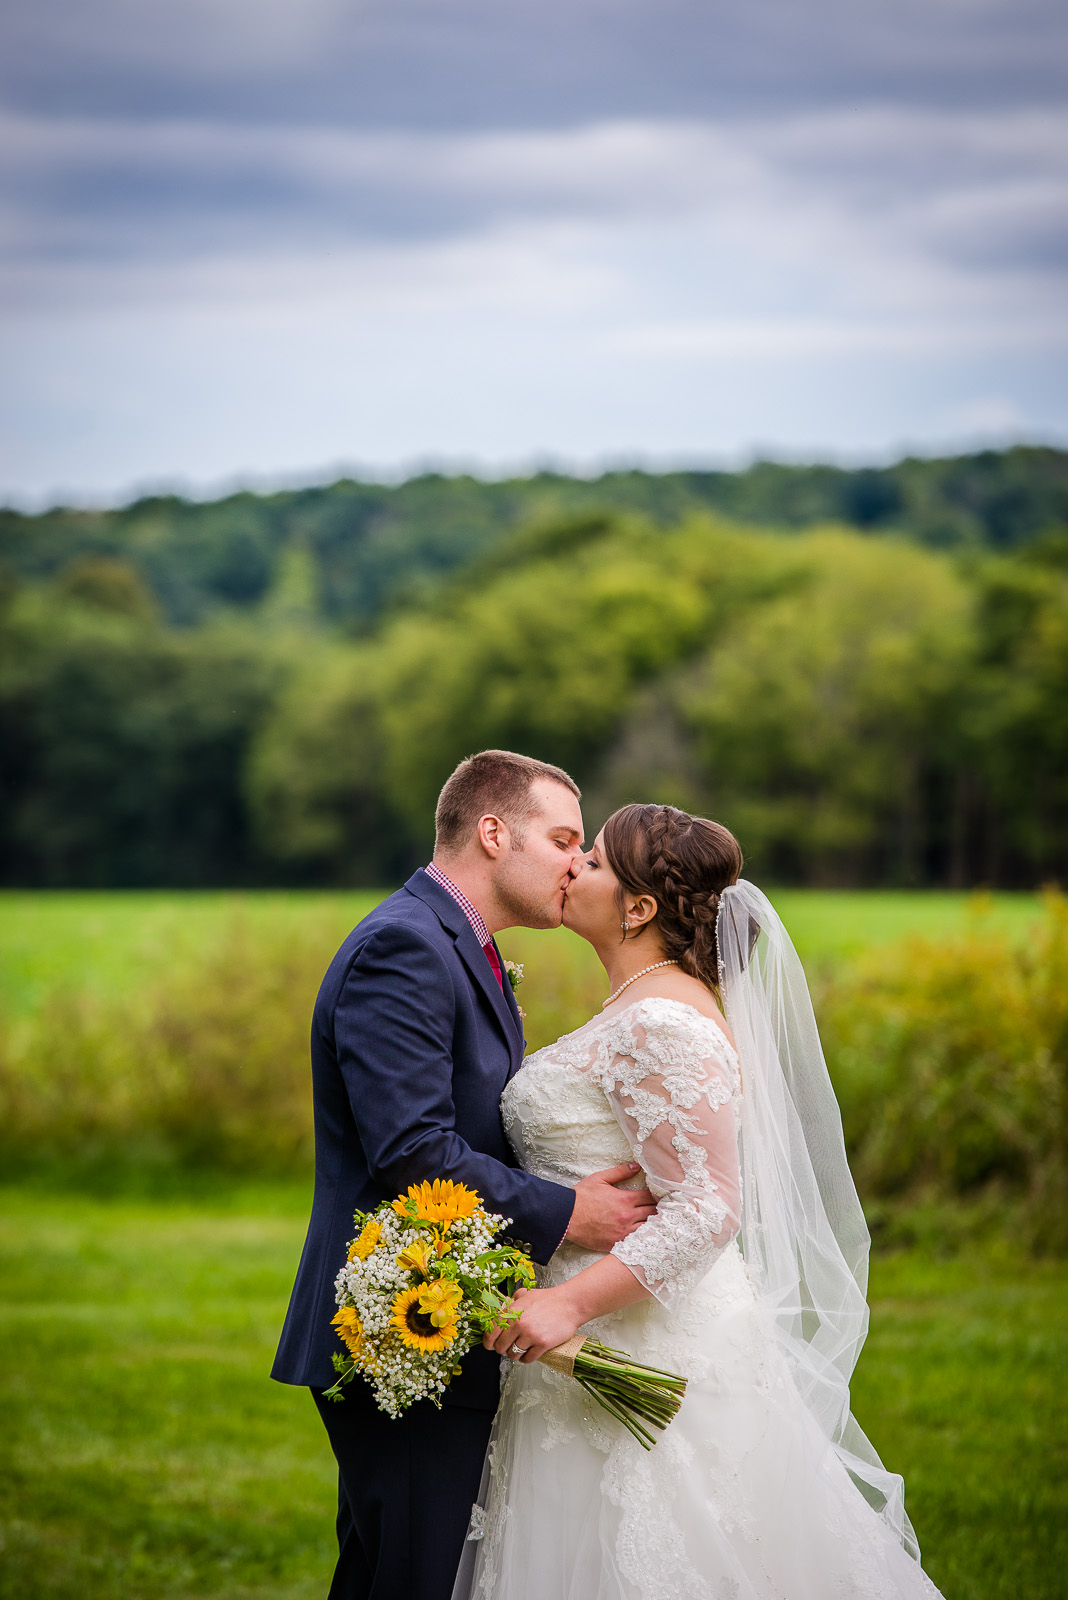 Eric_and_Christy_Photography_Blog_Wedding_Stacey_Geoff-55